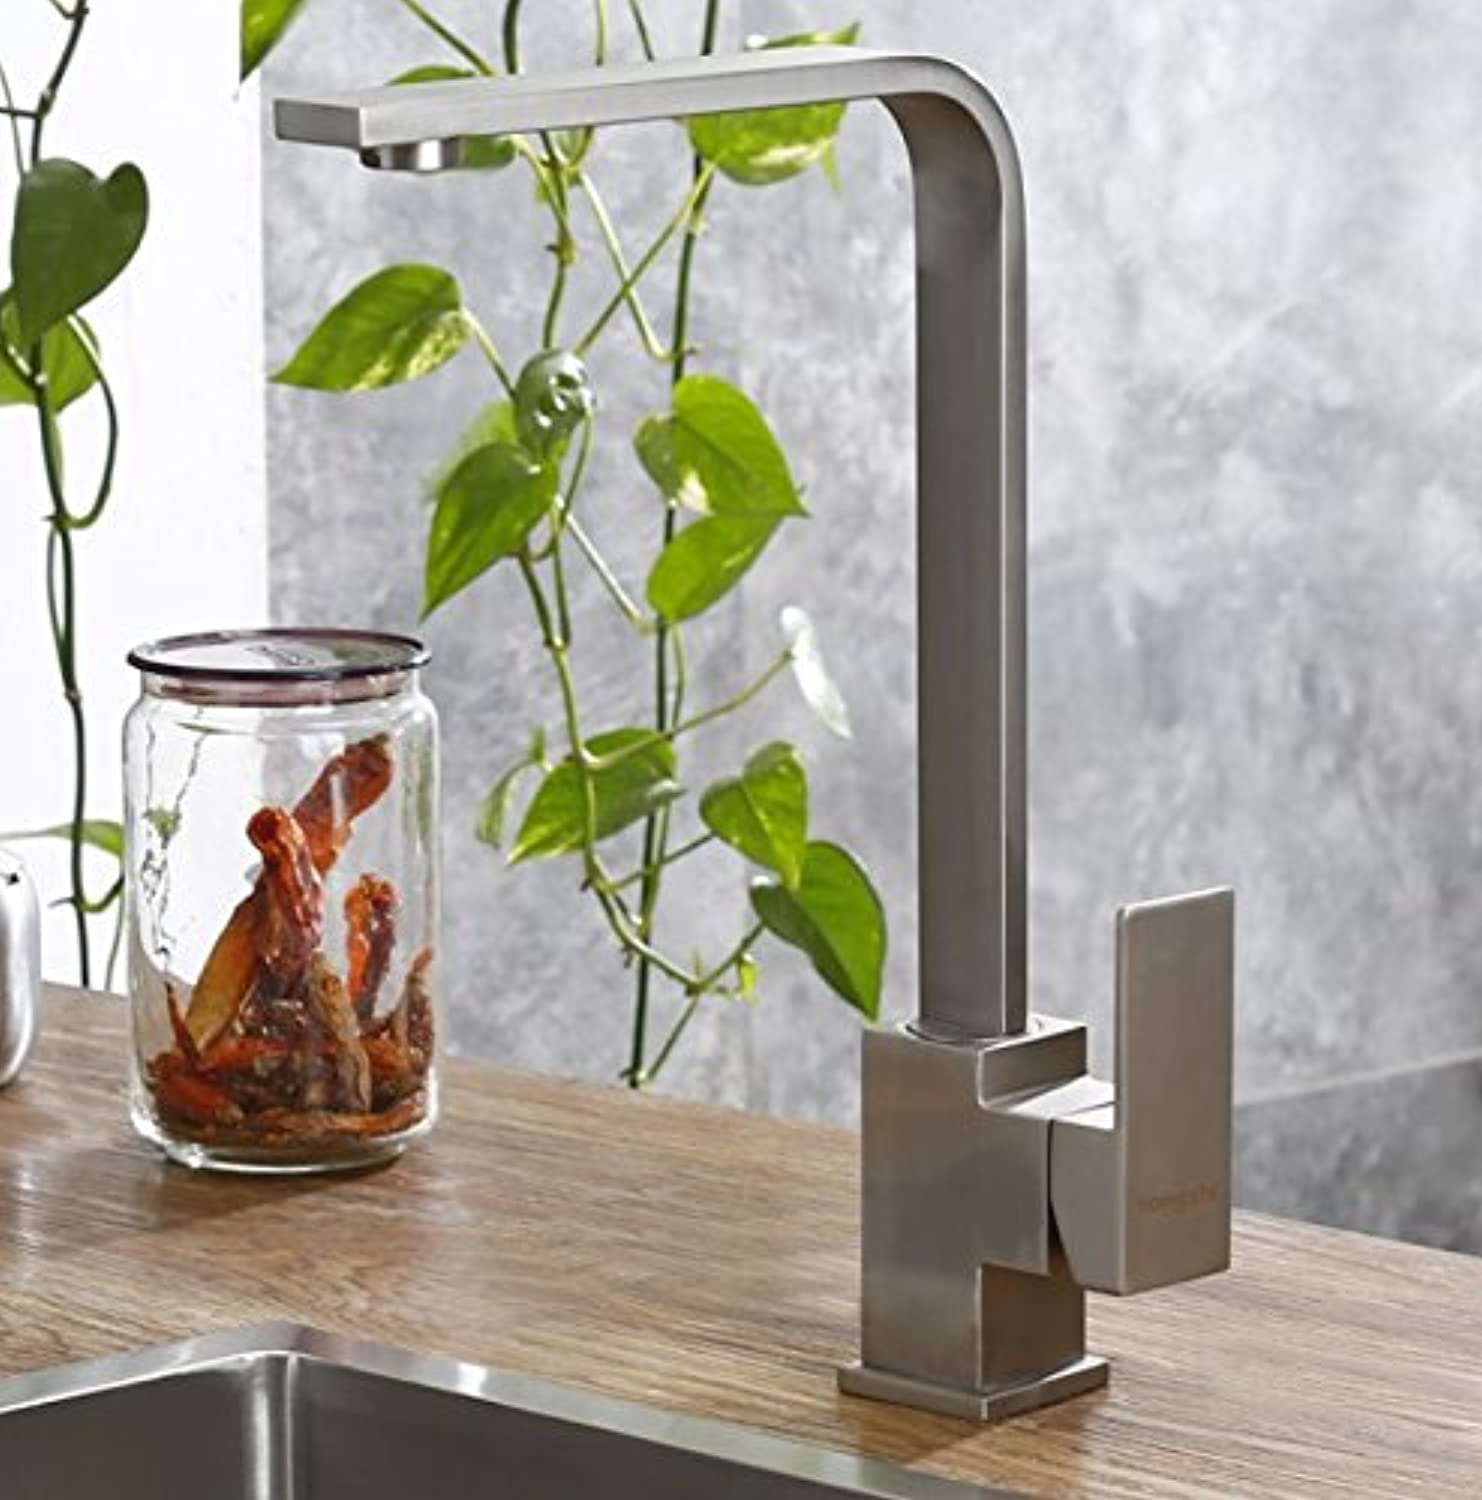 Diongrdk Kaiping Faucet, All Copper, Kitchen Faucet, Vegetable Basin, Faucet Faucet Faucet Faucet